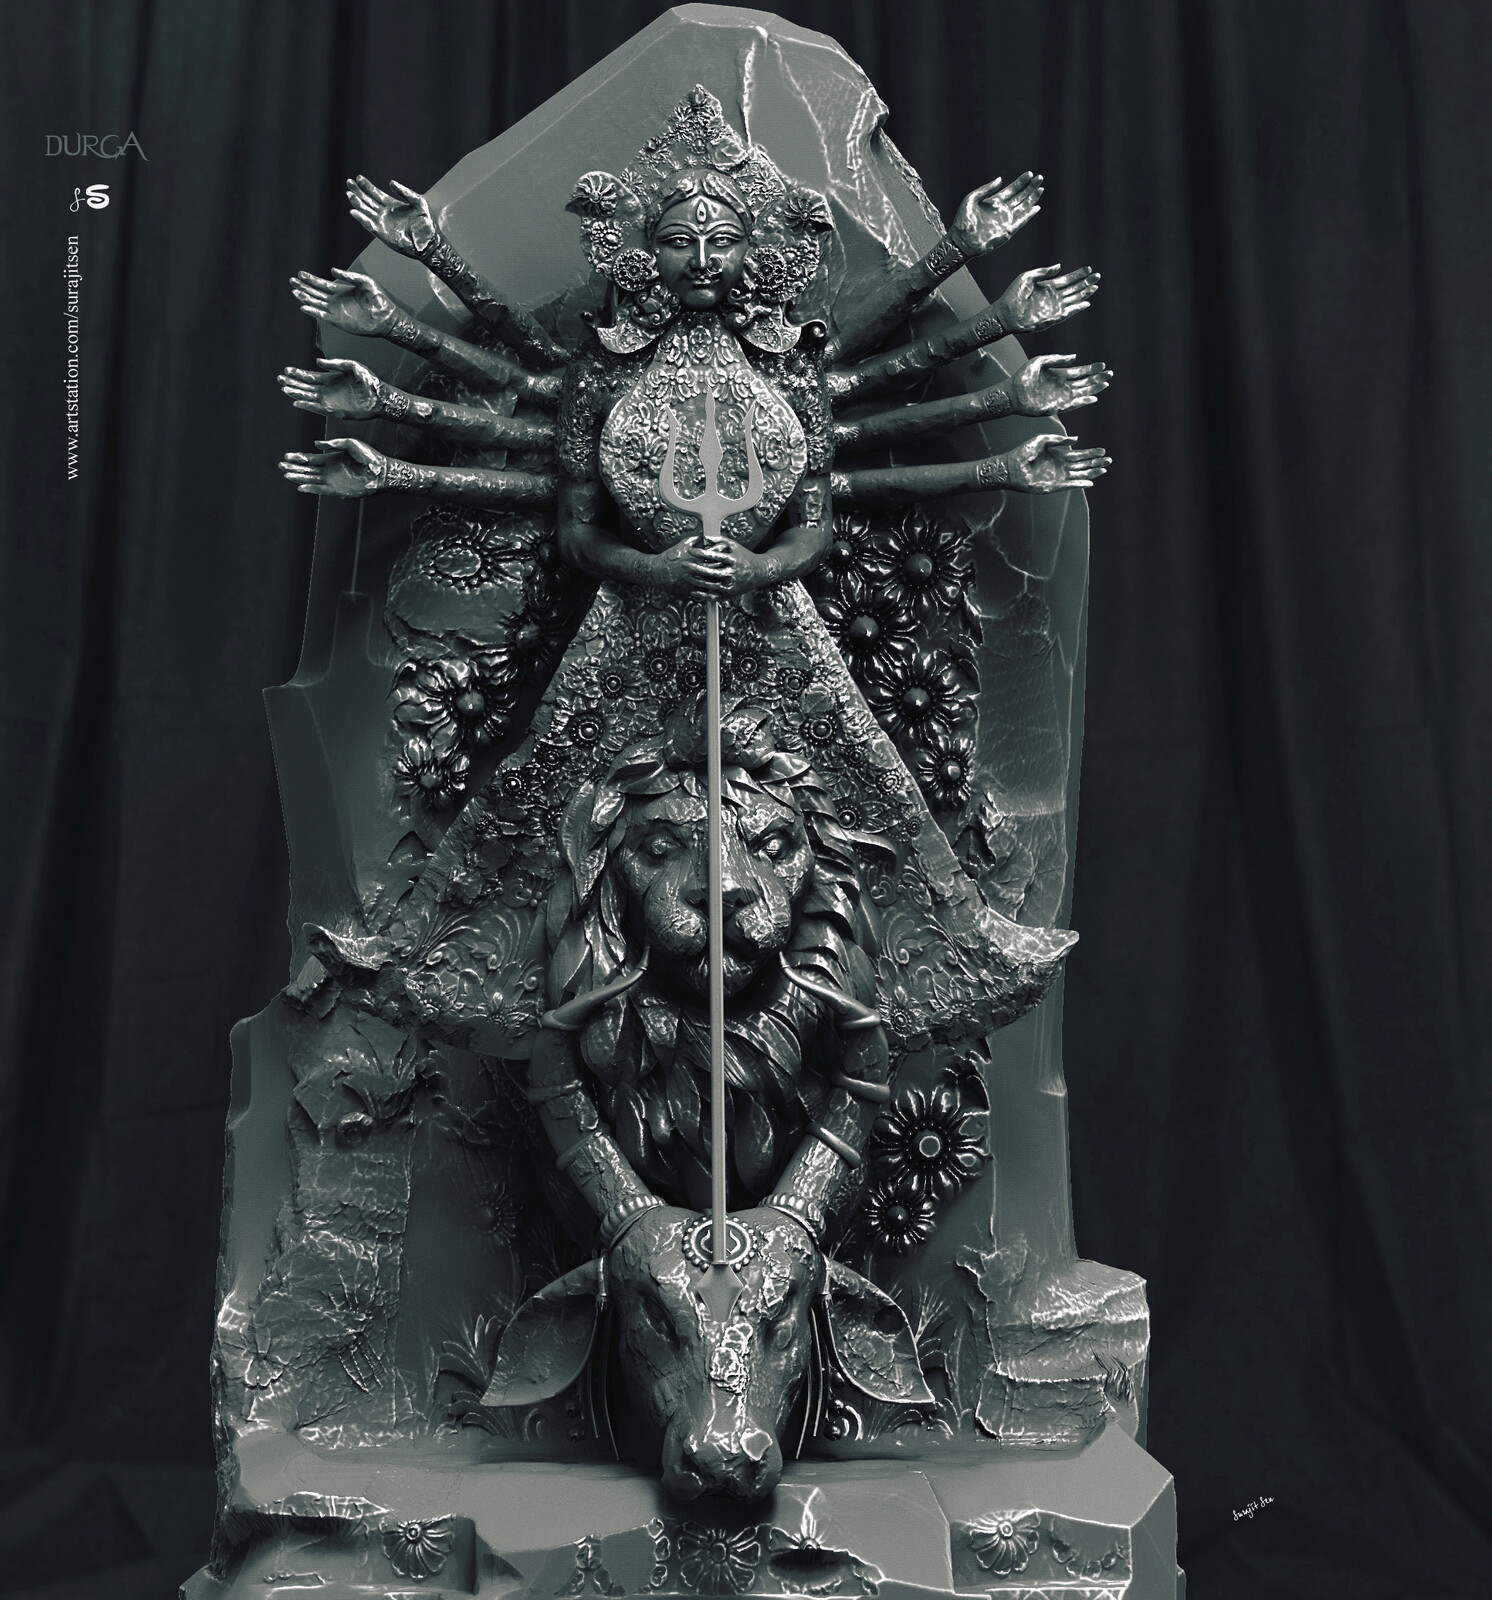 Another version of Durga Sculpture. I tried to make a form of my thoughts.